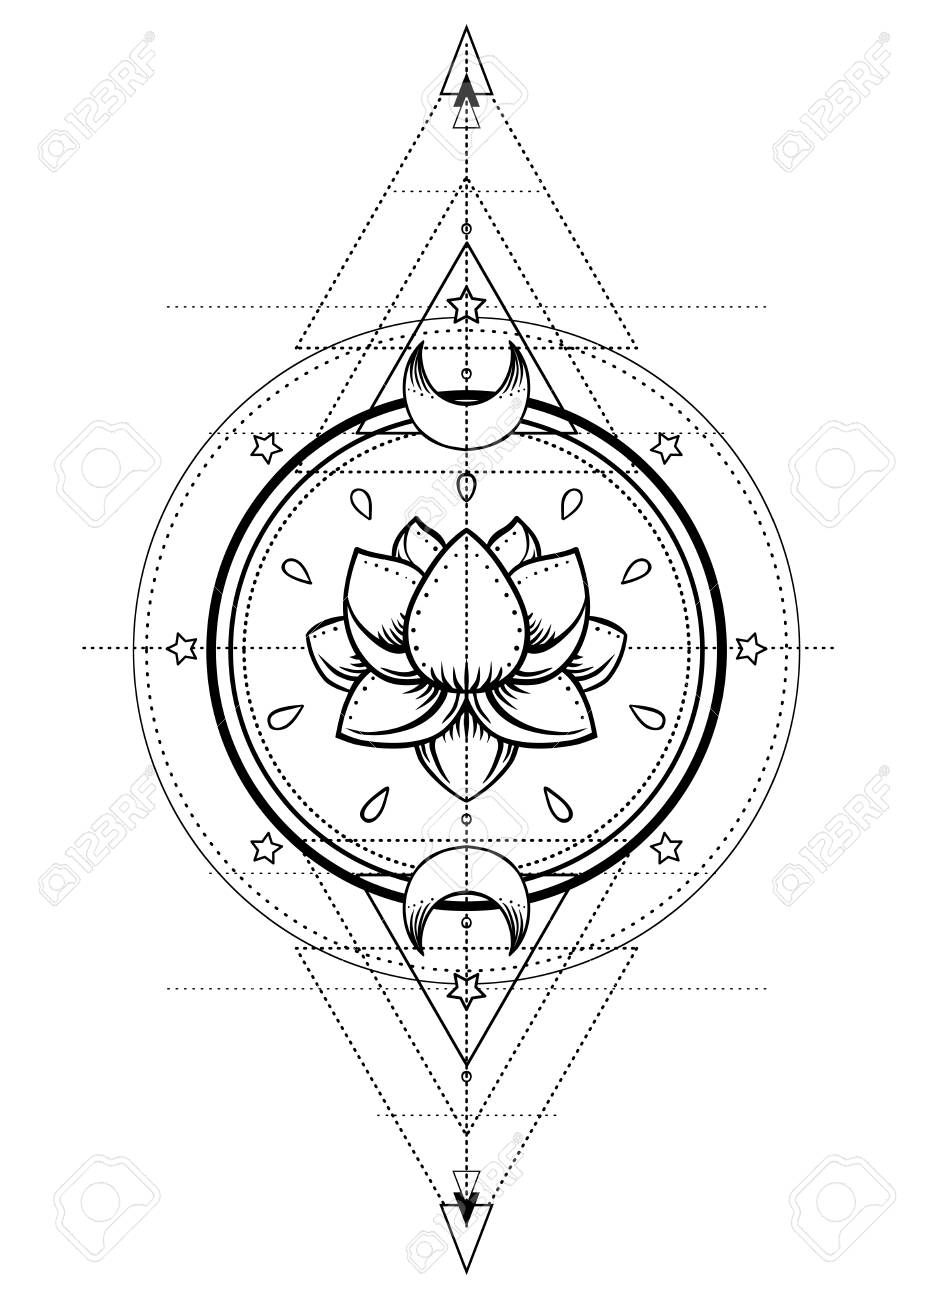 Harmony Tattoo Outline Wiring Diagrams Here39s Some Switch Symbols Switches Are Anything That Controls An Lotus And Sacred Geometry Ayurveda Symbol Of Balance Rh 123rf Com Peace Love